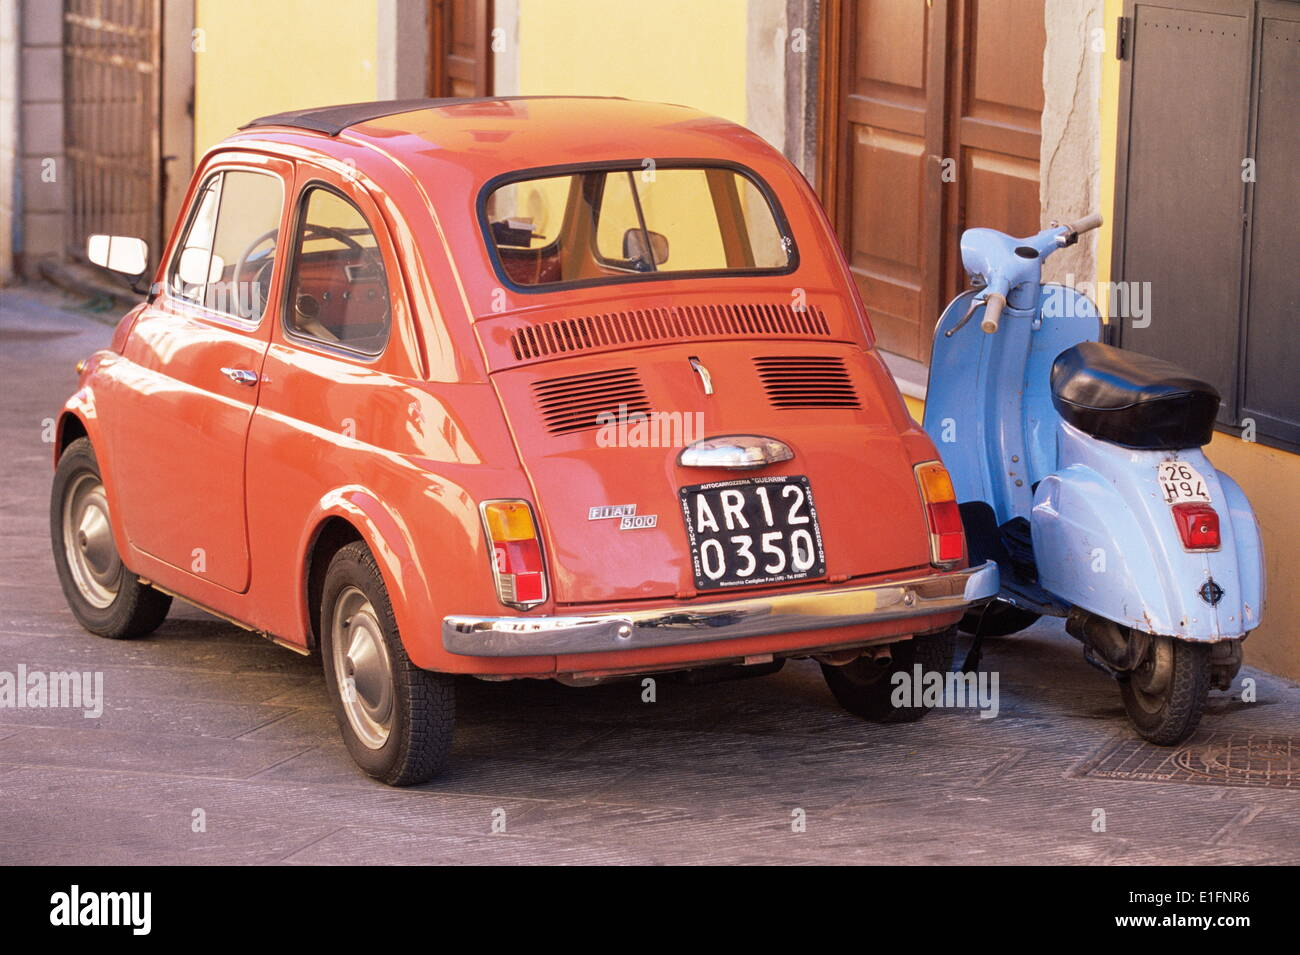 fiat 500 car and old blue scooter parked together in back street stock photo royalty free image. Black Bedroom Furniture Sets. Home Design Ideas